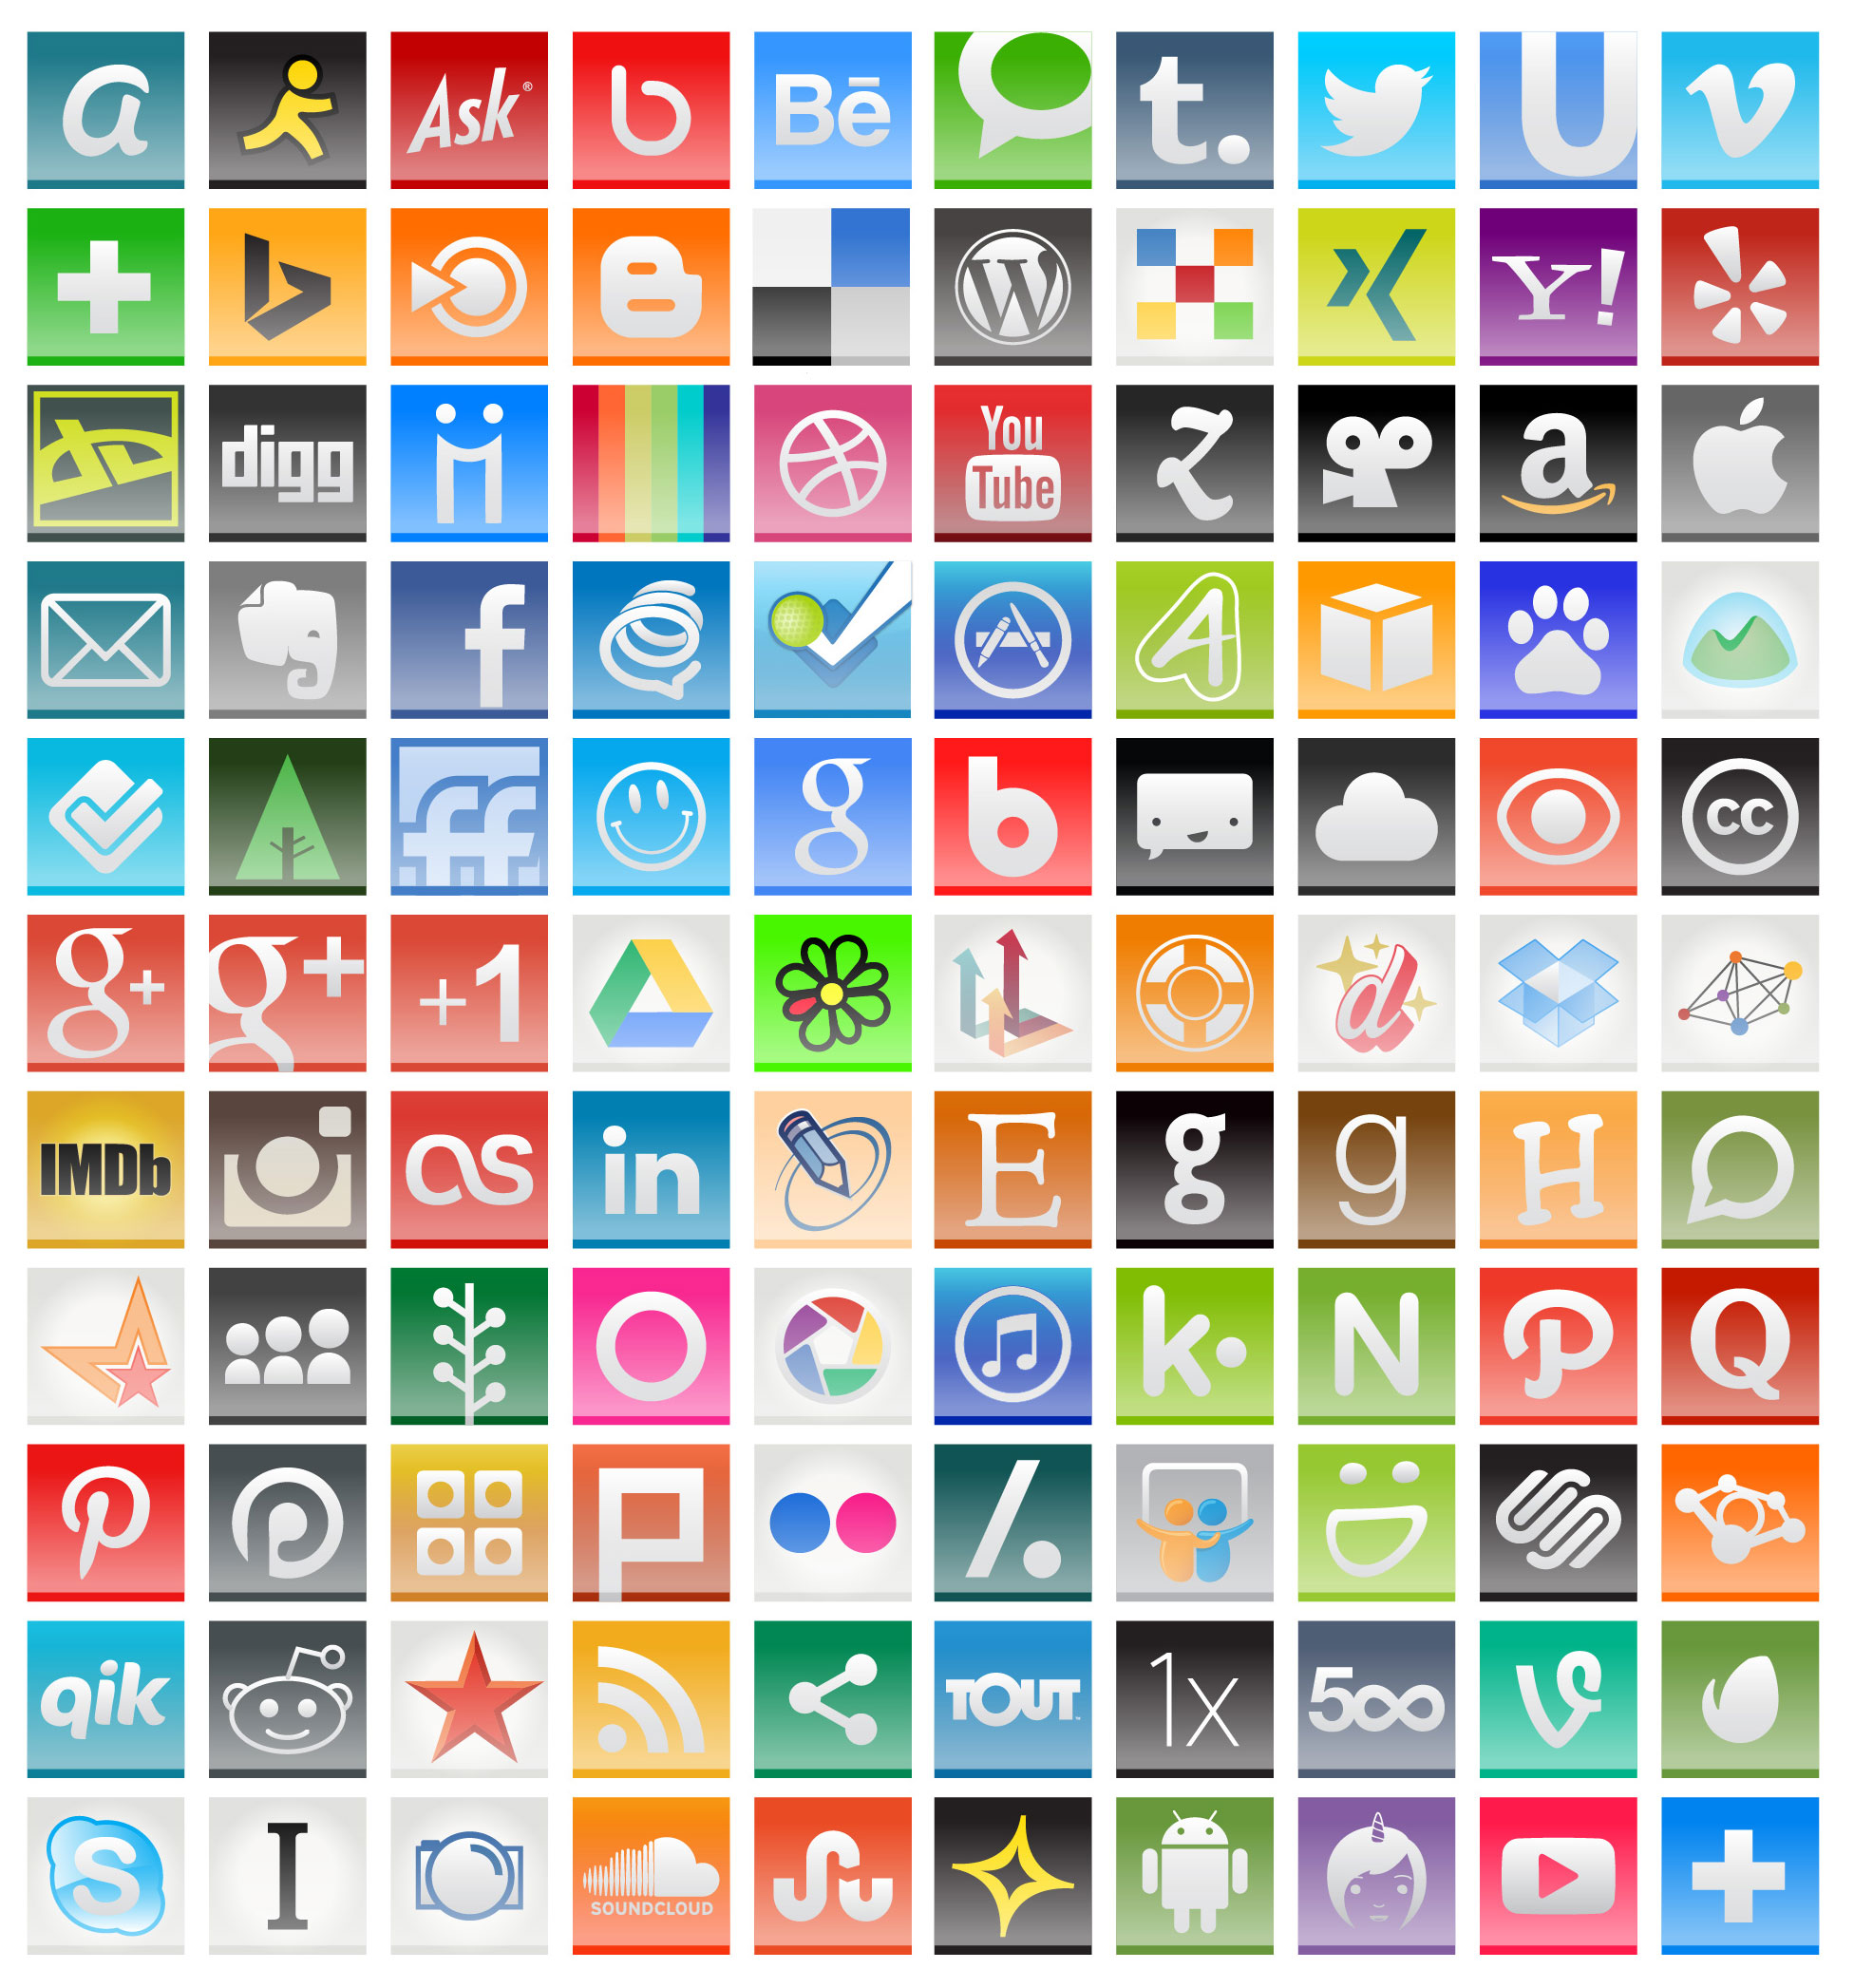 Social Media Logos Wallpaper For Gadget Handph 20474 Wallpaper 1952x2093